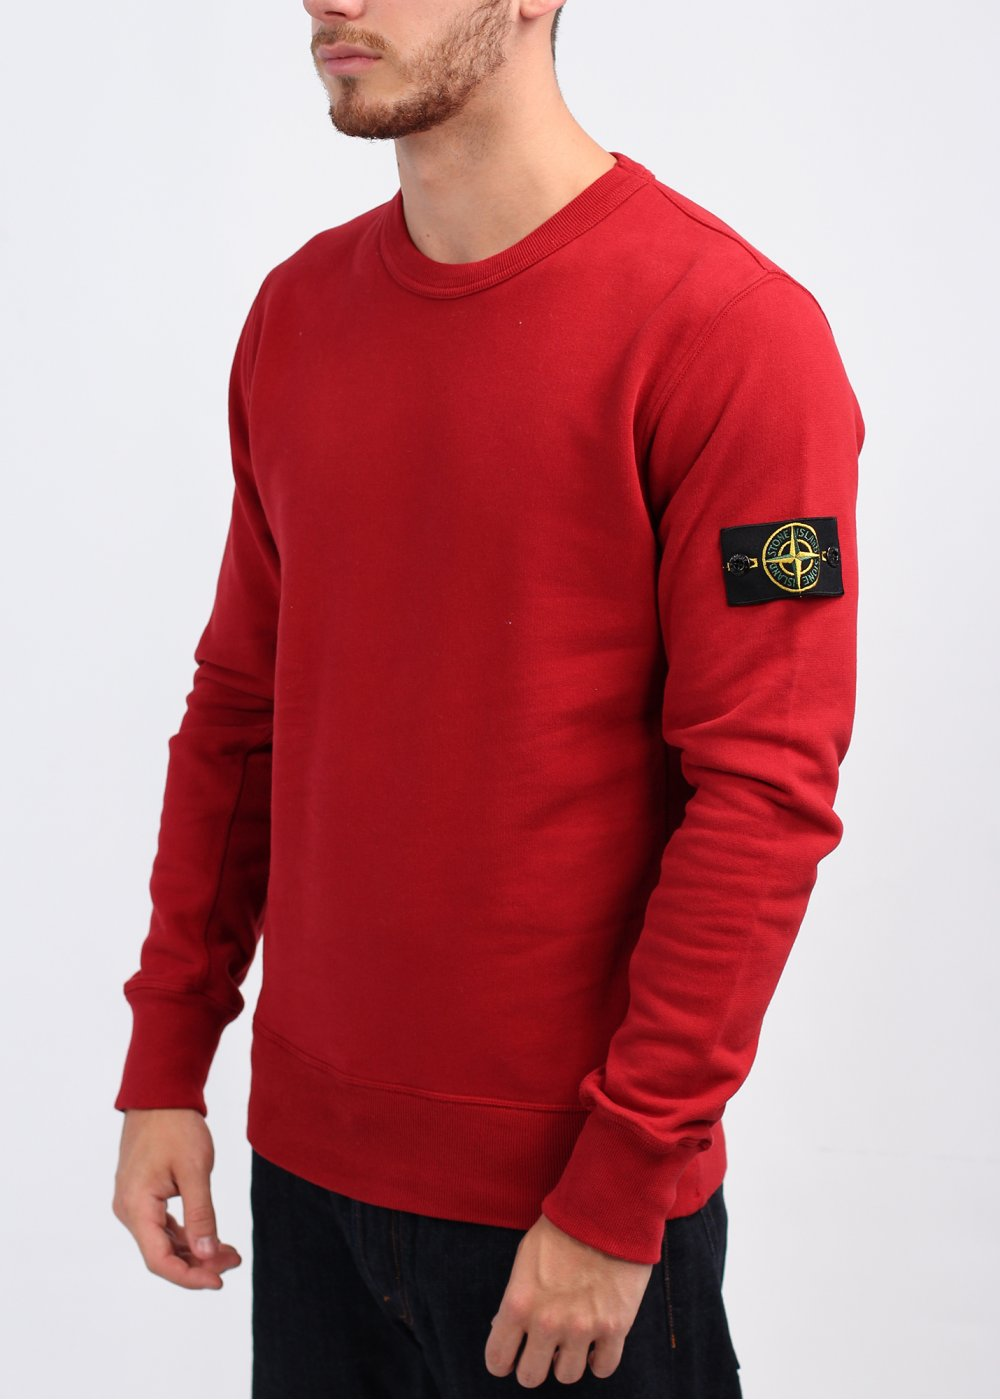 stone island sweatshirt red. Black Bedroom Furniture Sets. Home Design Ideas